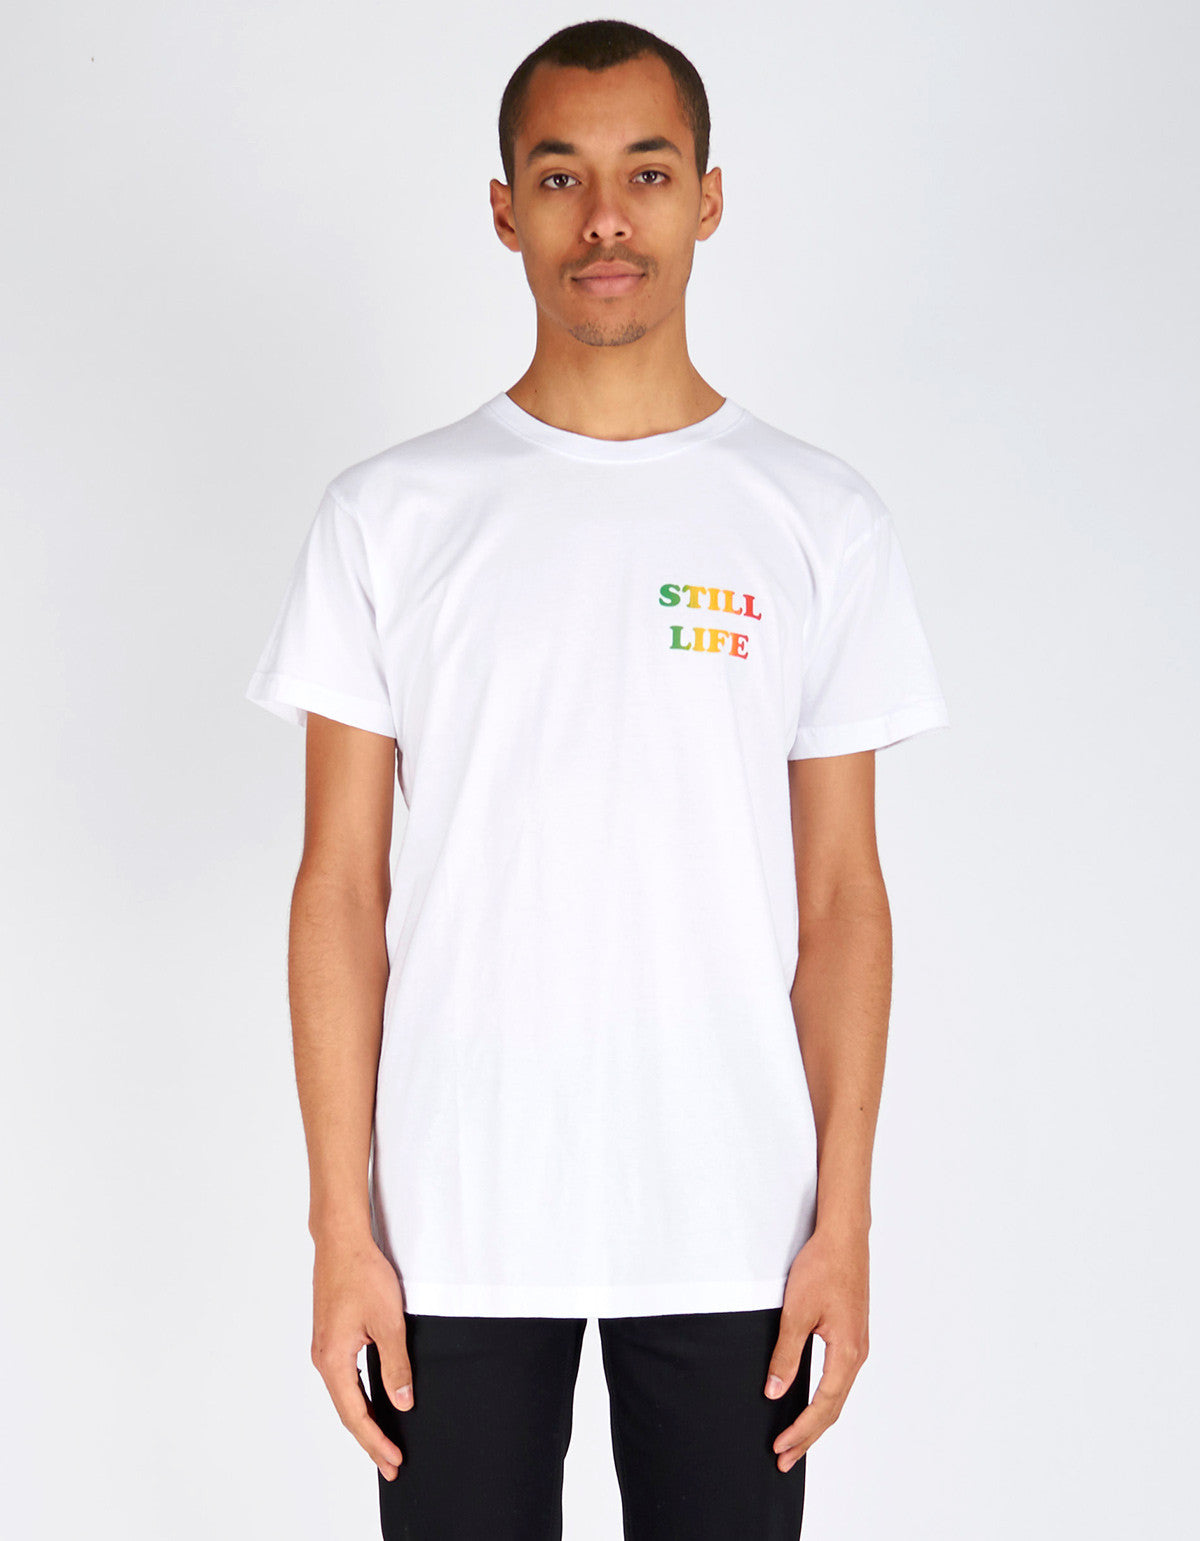 Still Life Simmer Down Tee White - Still Life - 1